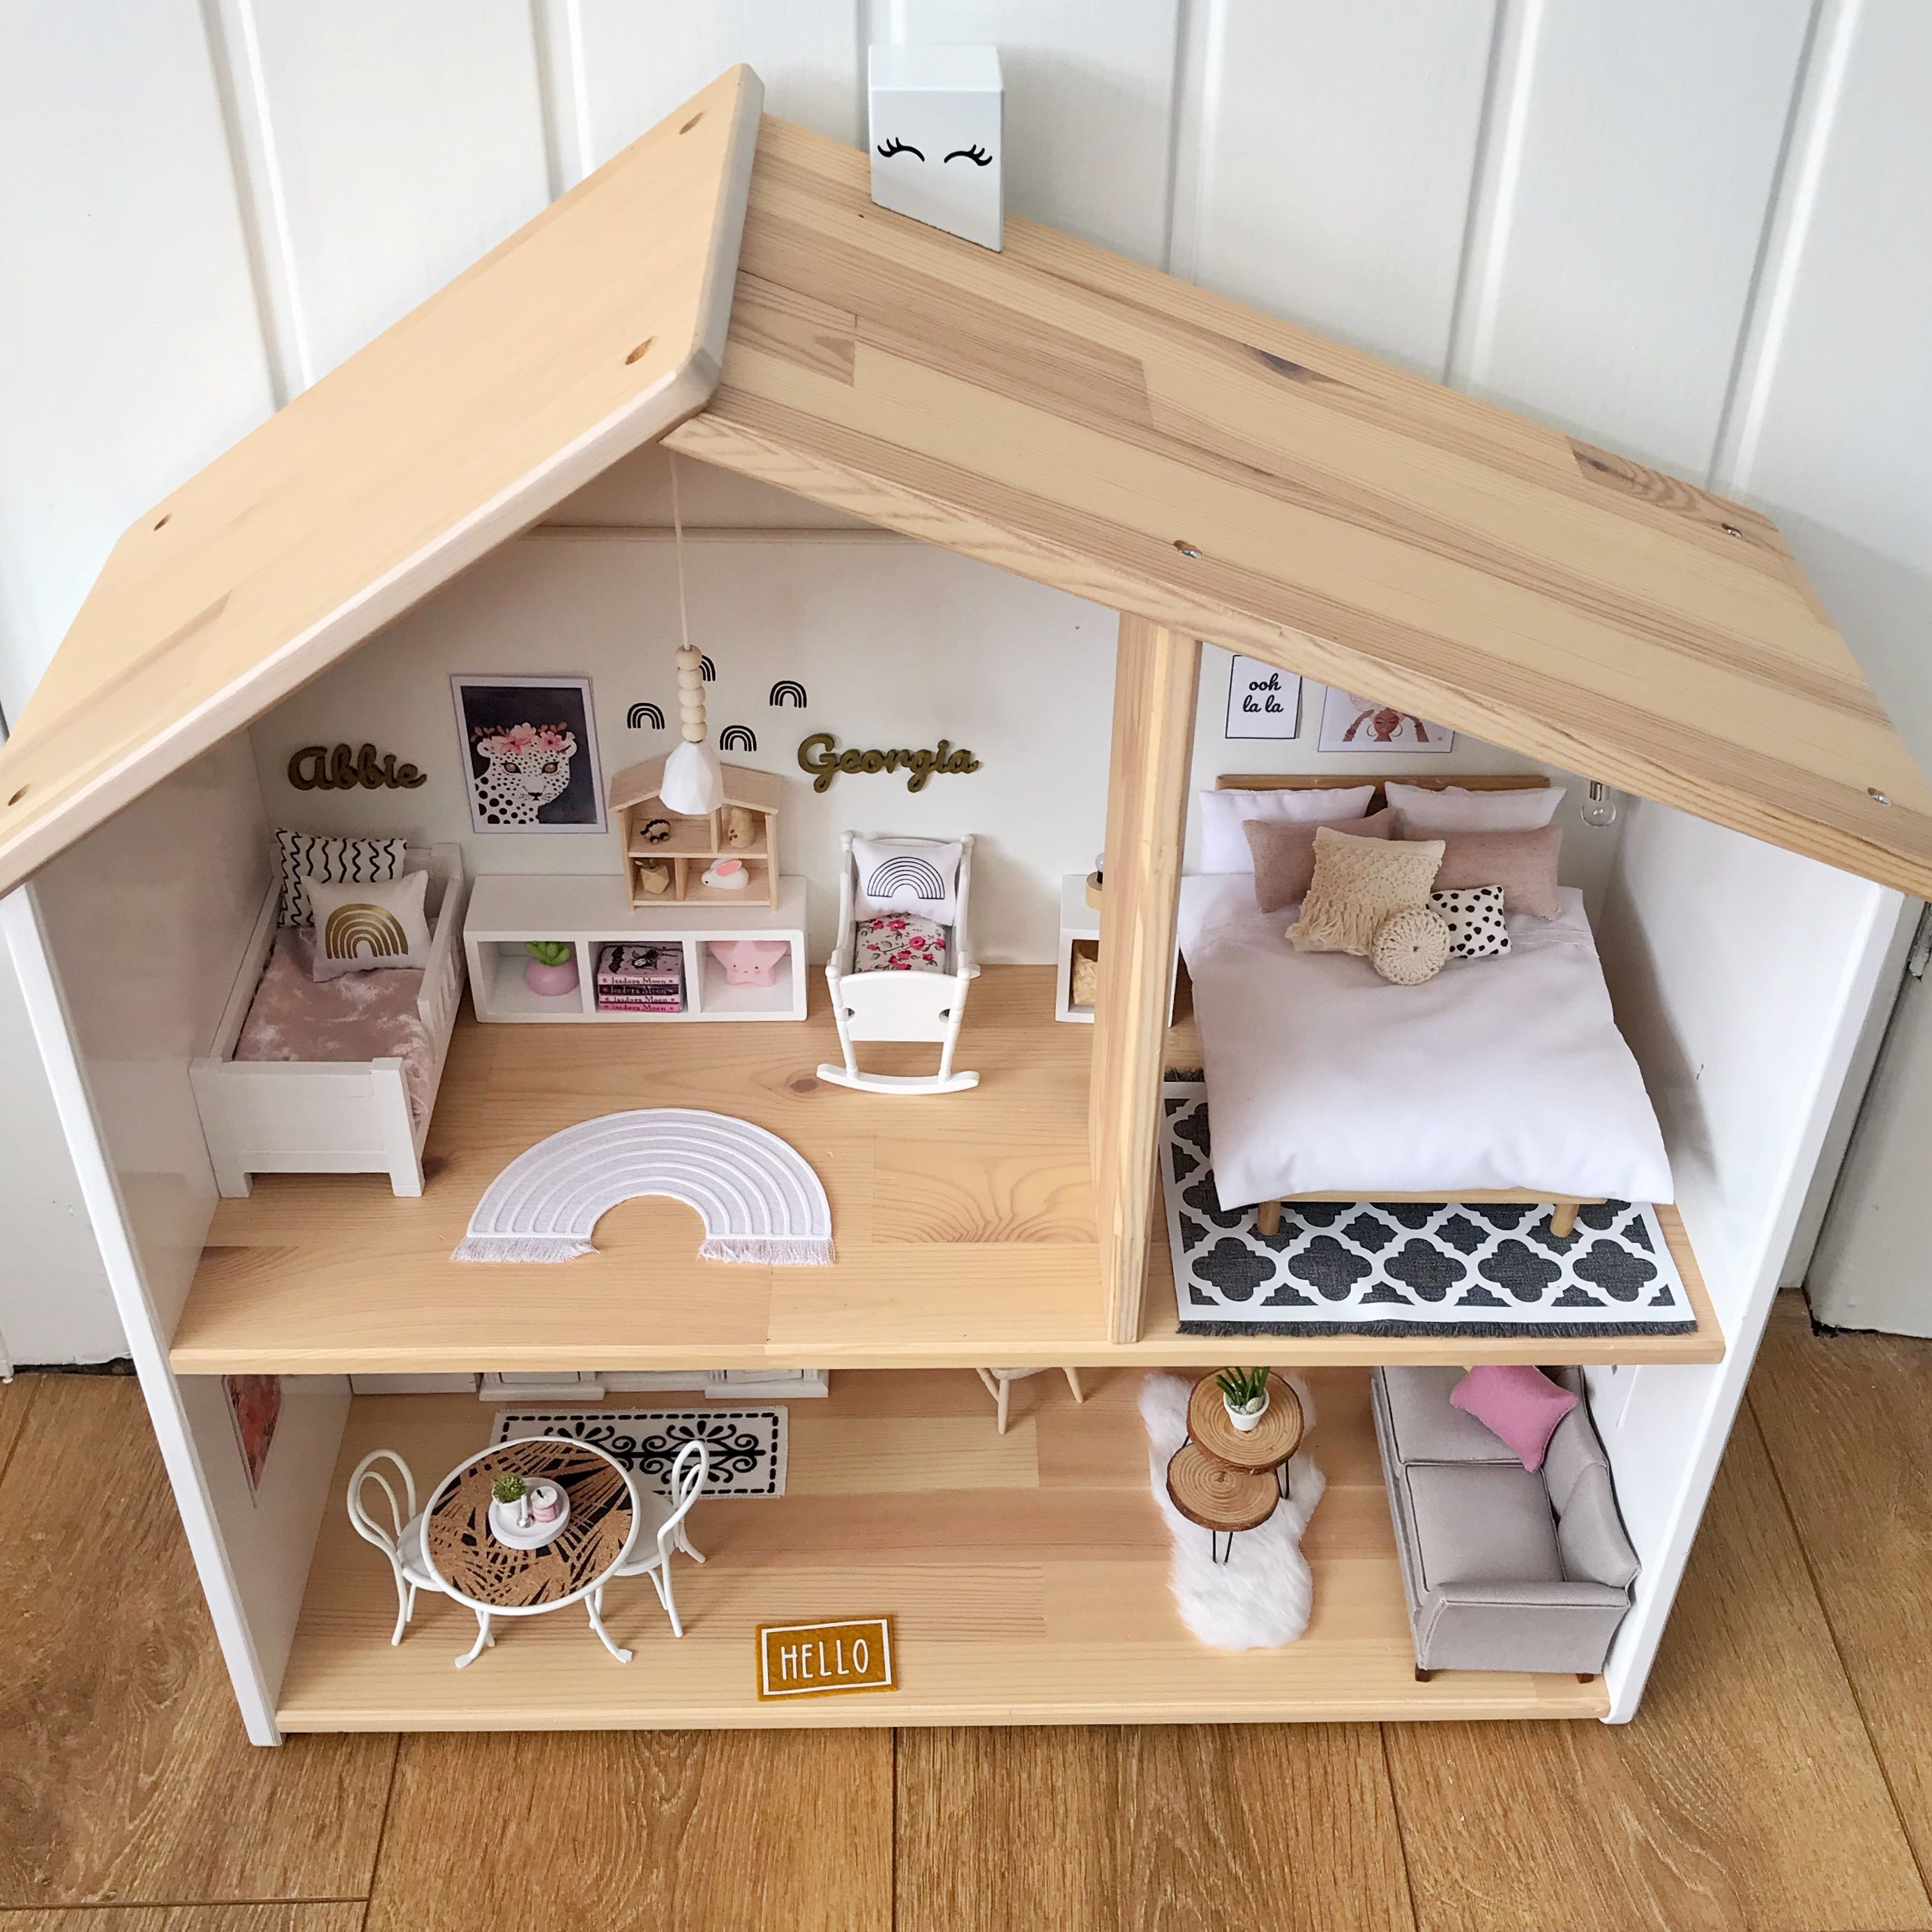 Modern dollhouse boho style - Ikea dollhouse renovation  #dollhouseaccessories - athome #dollhouseaccessories